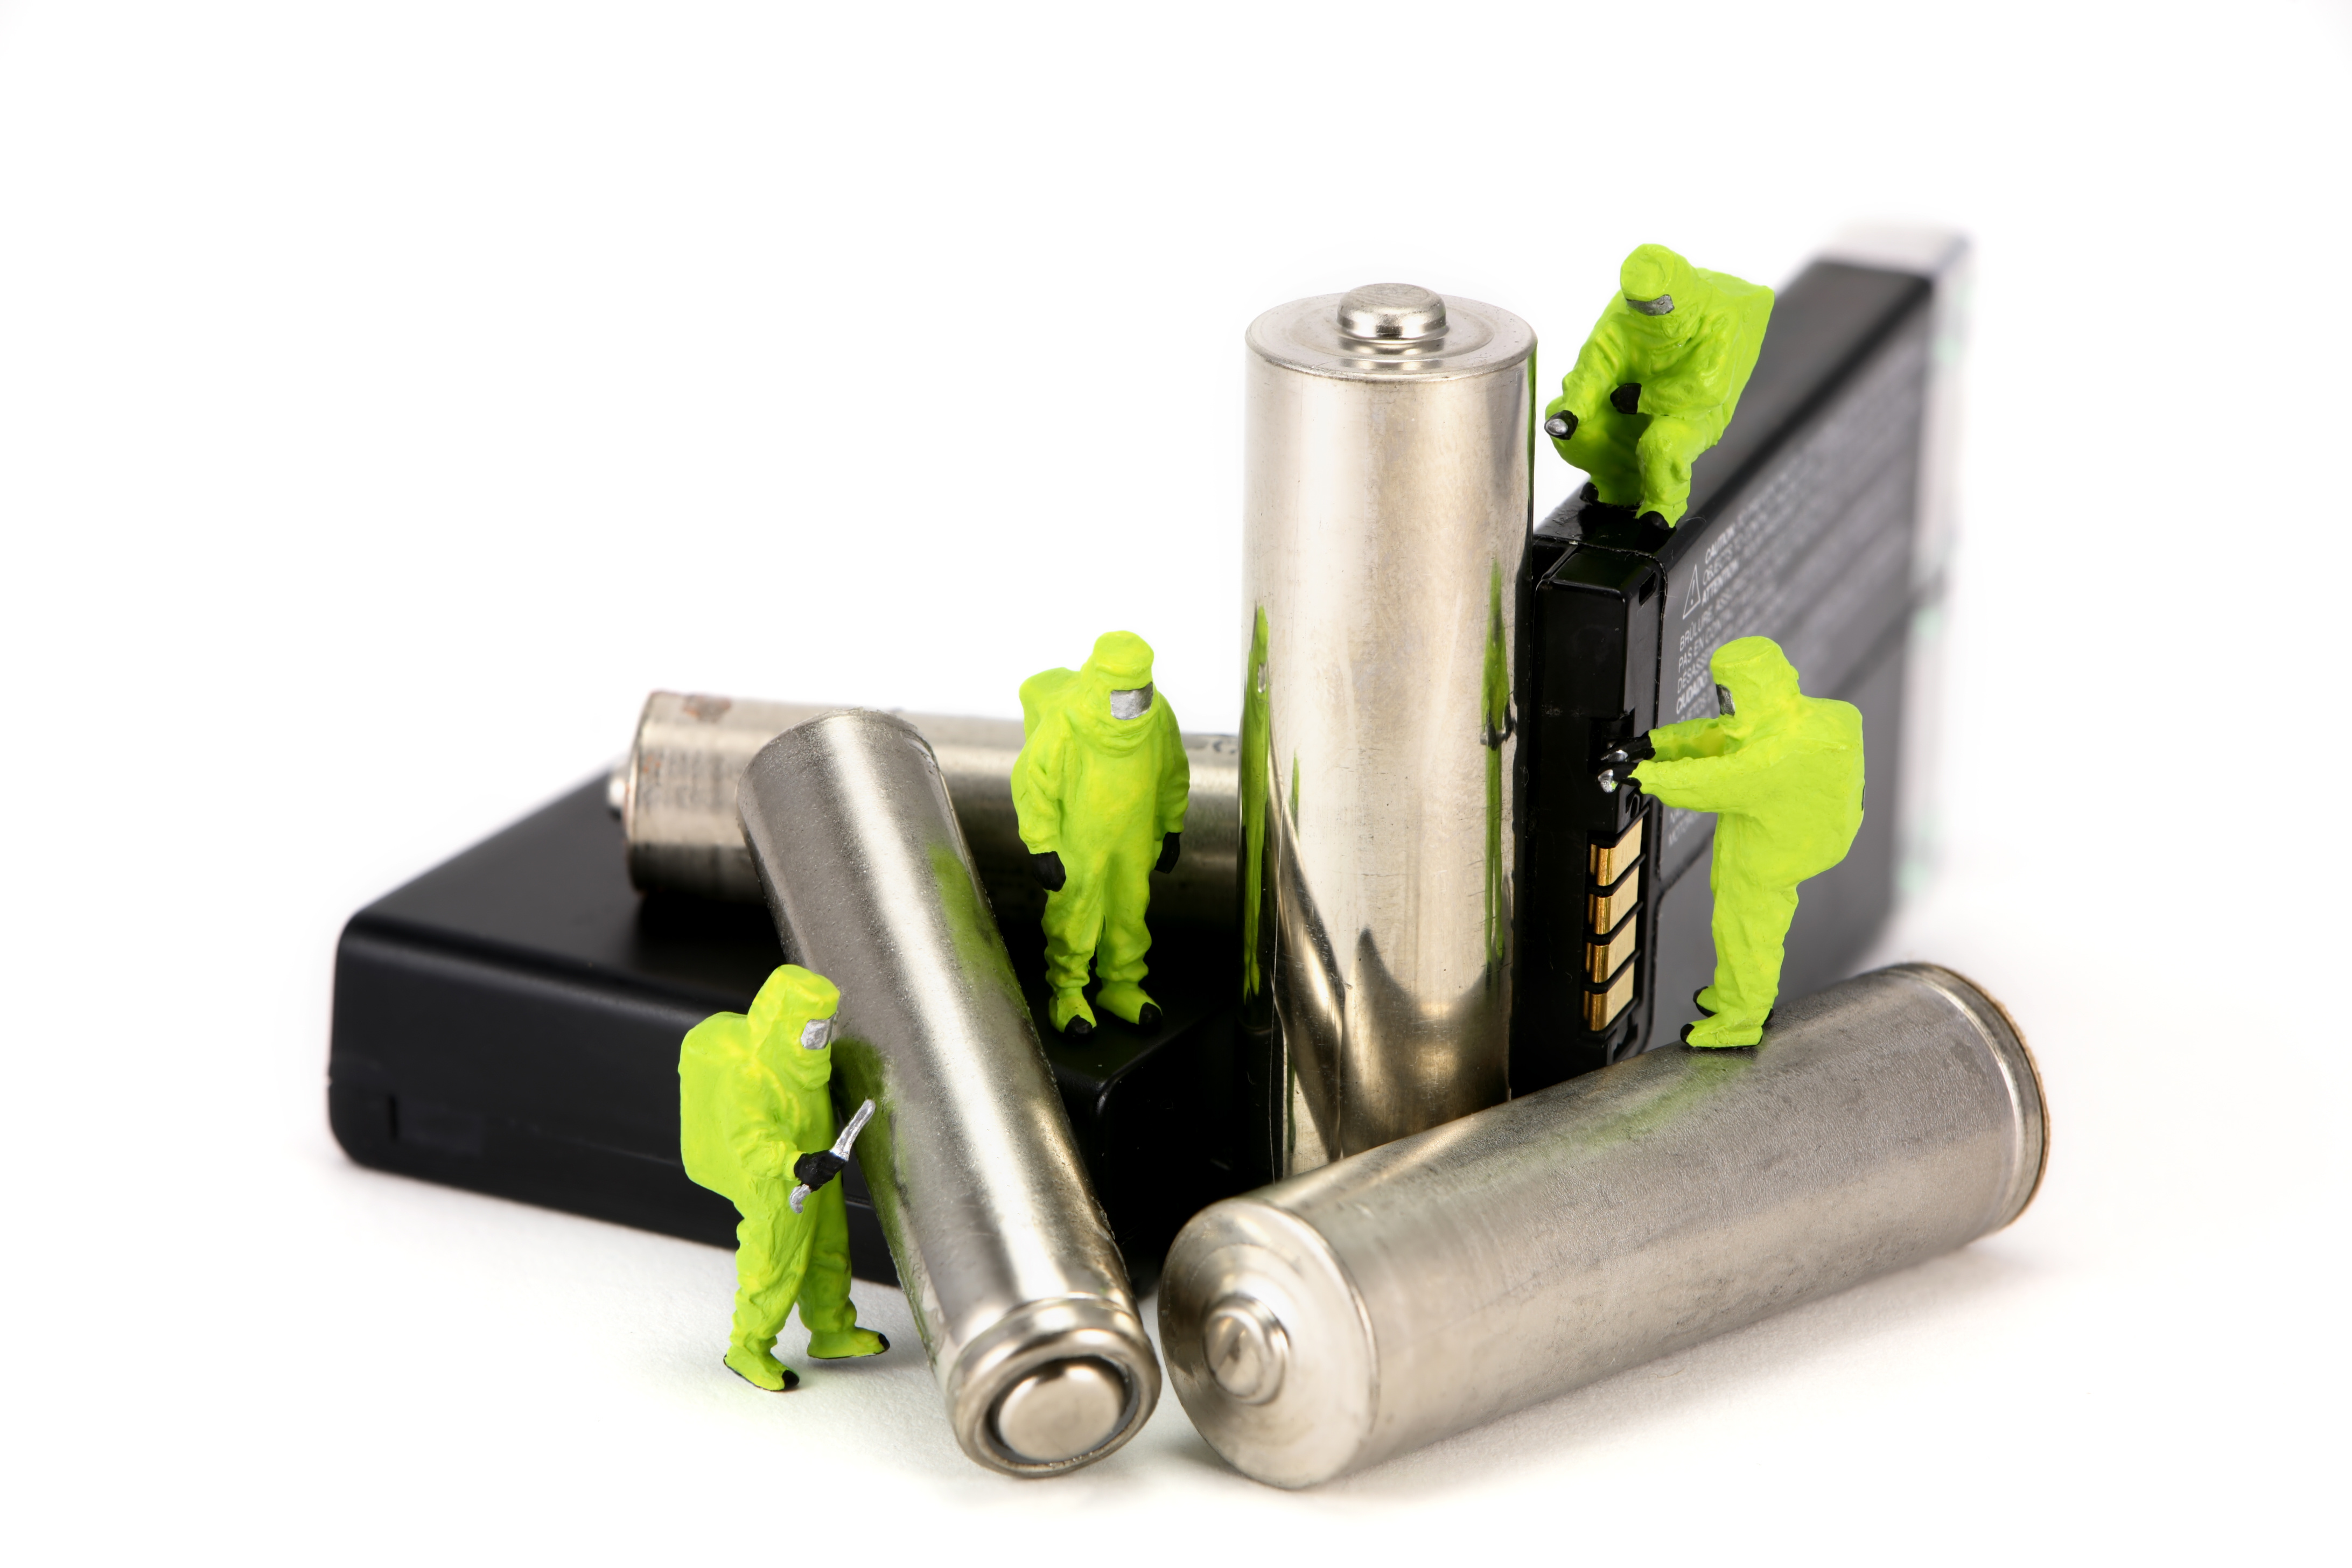 New obligations for companies selling electronic products in Germany, as a result of a new Batteries Act thumbnail